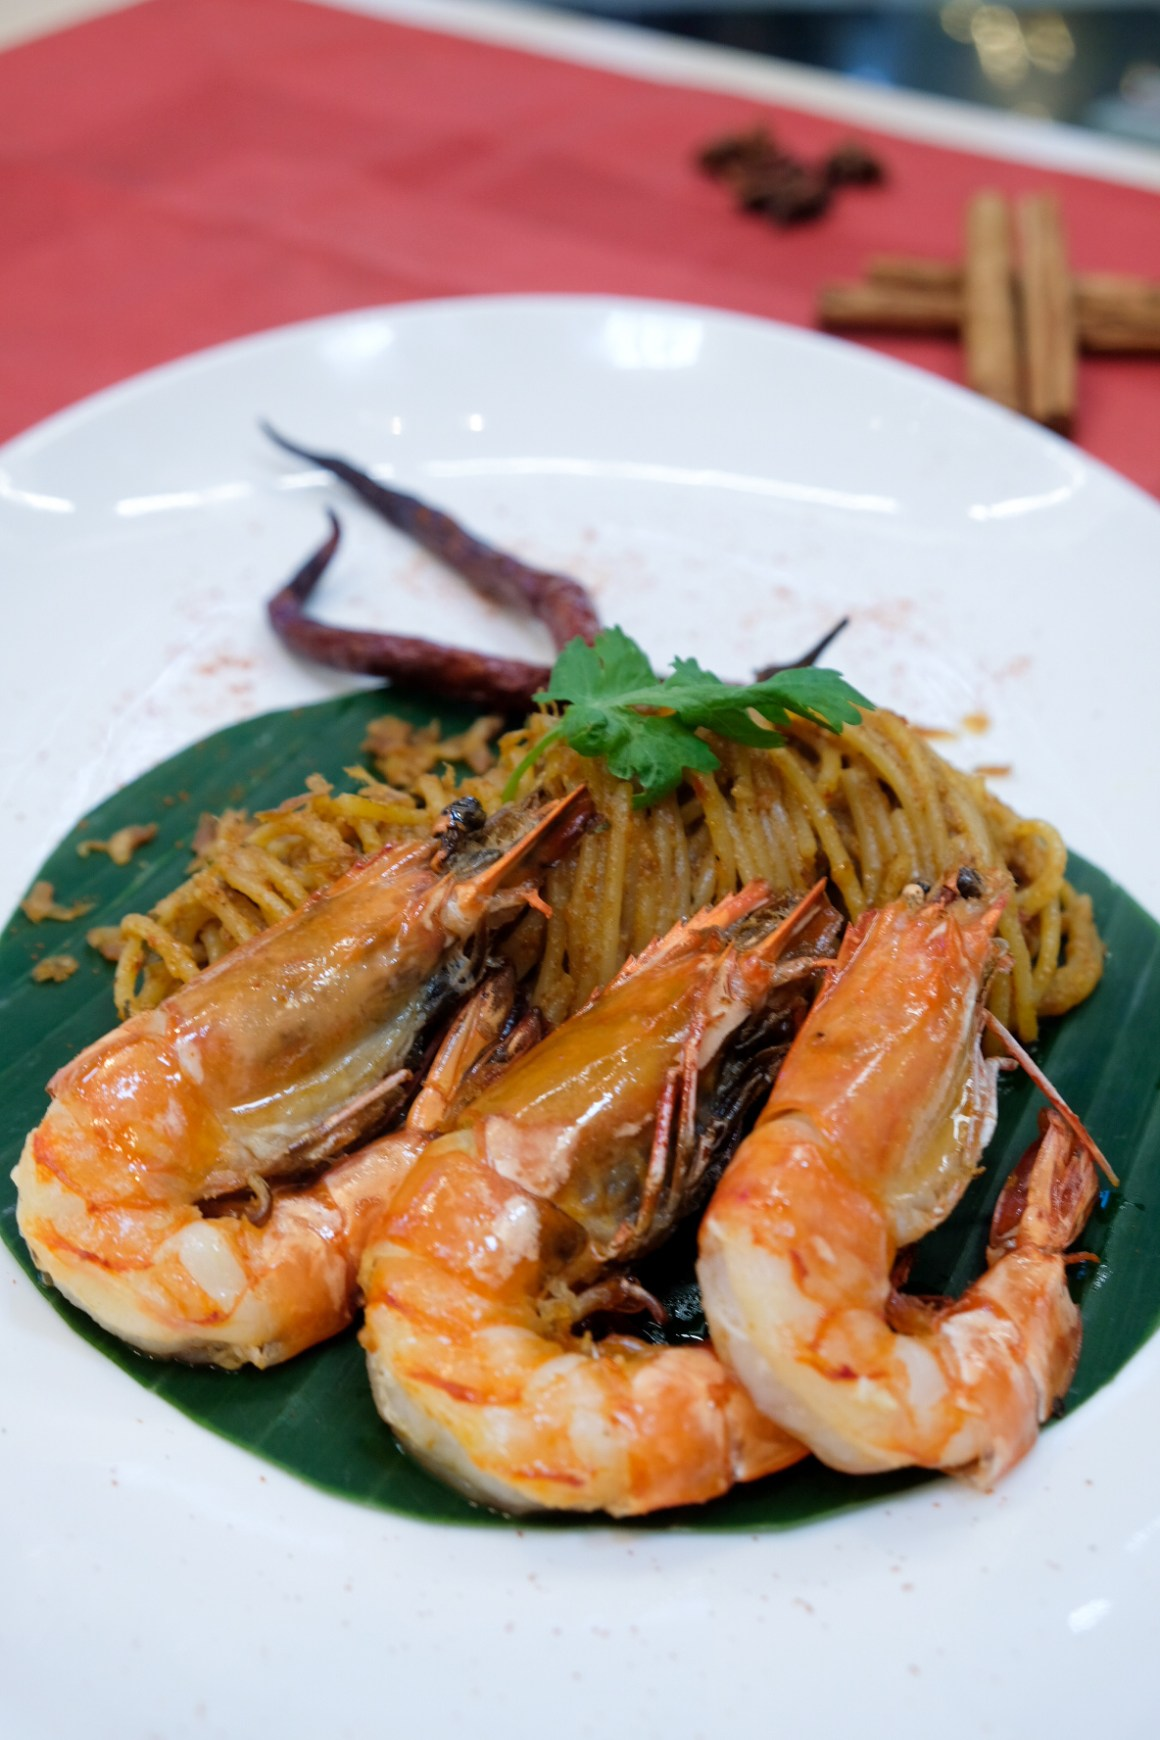 Where To Shop And Dine On 2019 National Day Long Weekend - Laksa Prawn Pasta by Fumee By Hanabos